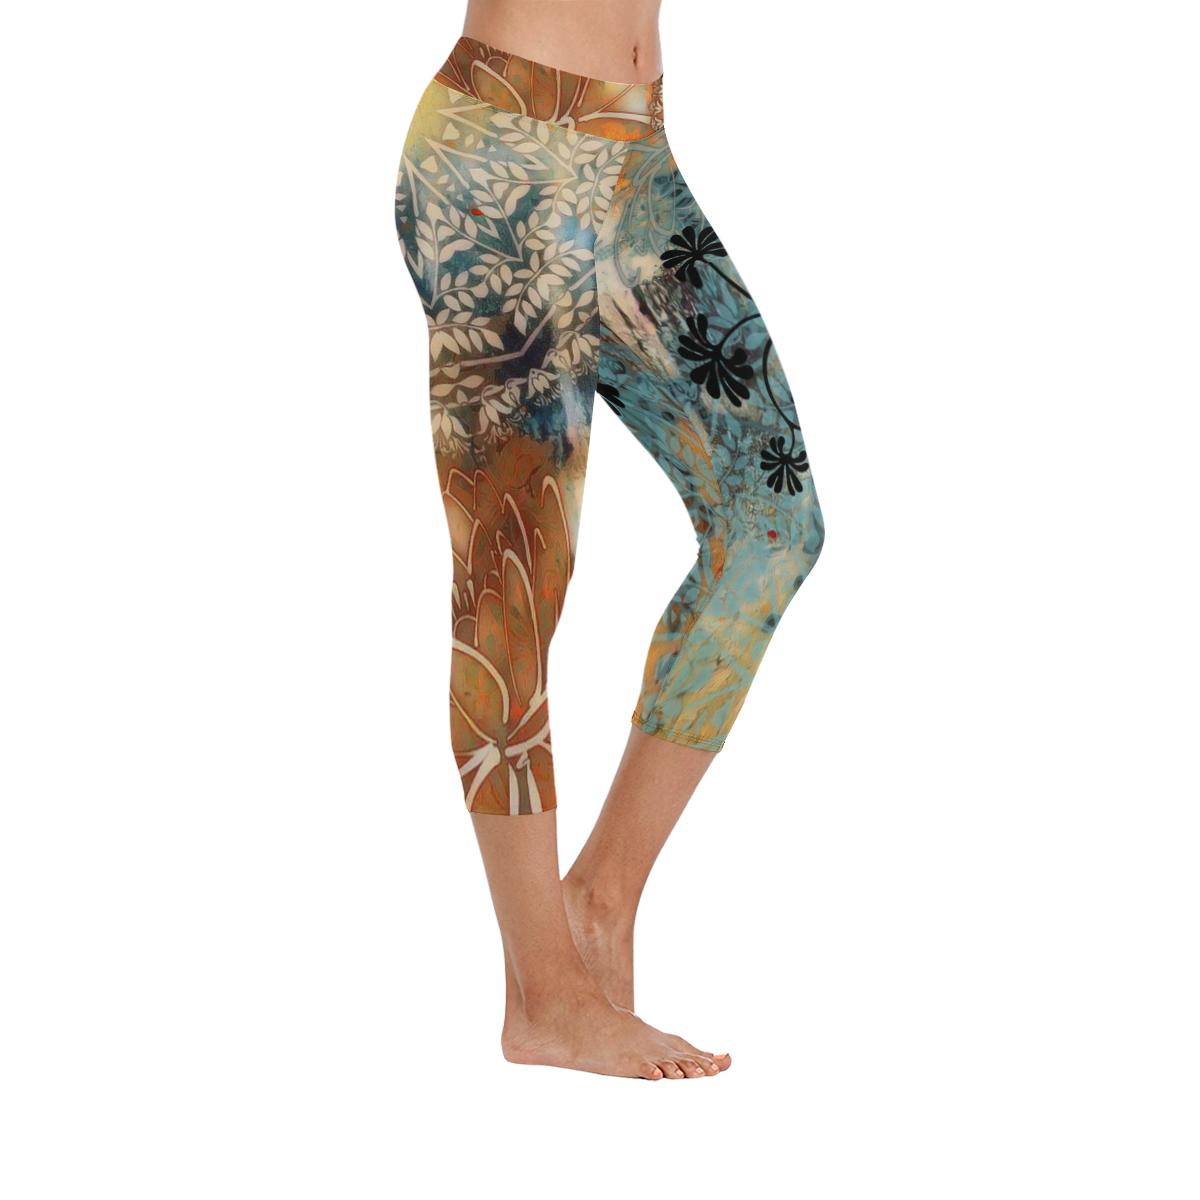 Boho Rustic Yoga Low Rise Capri Leggings - Maui Woke